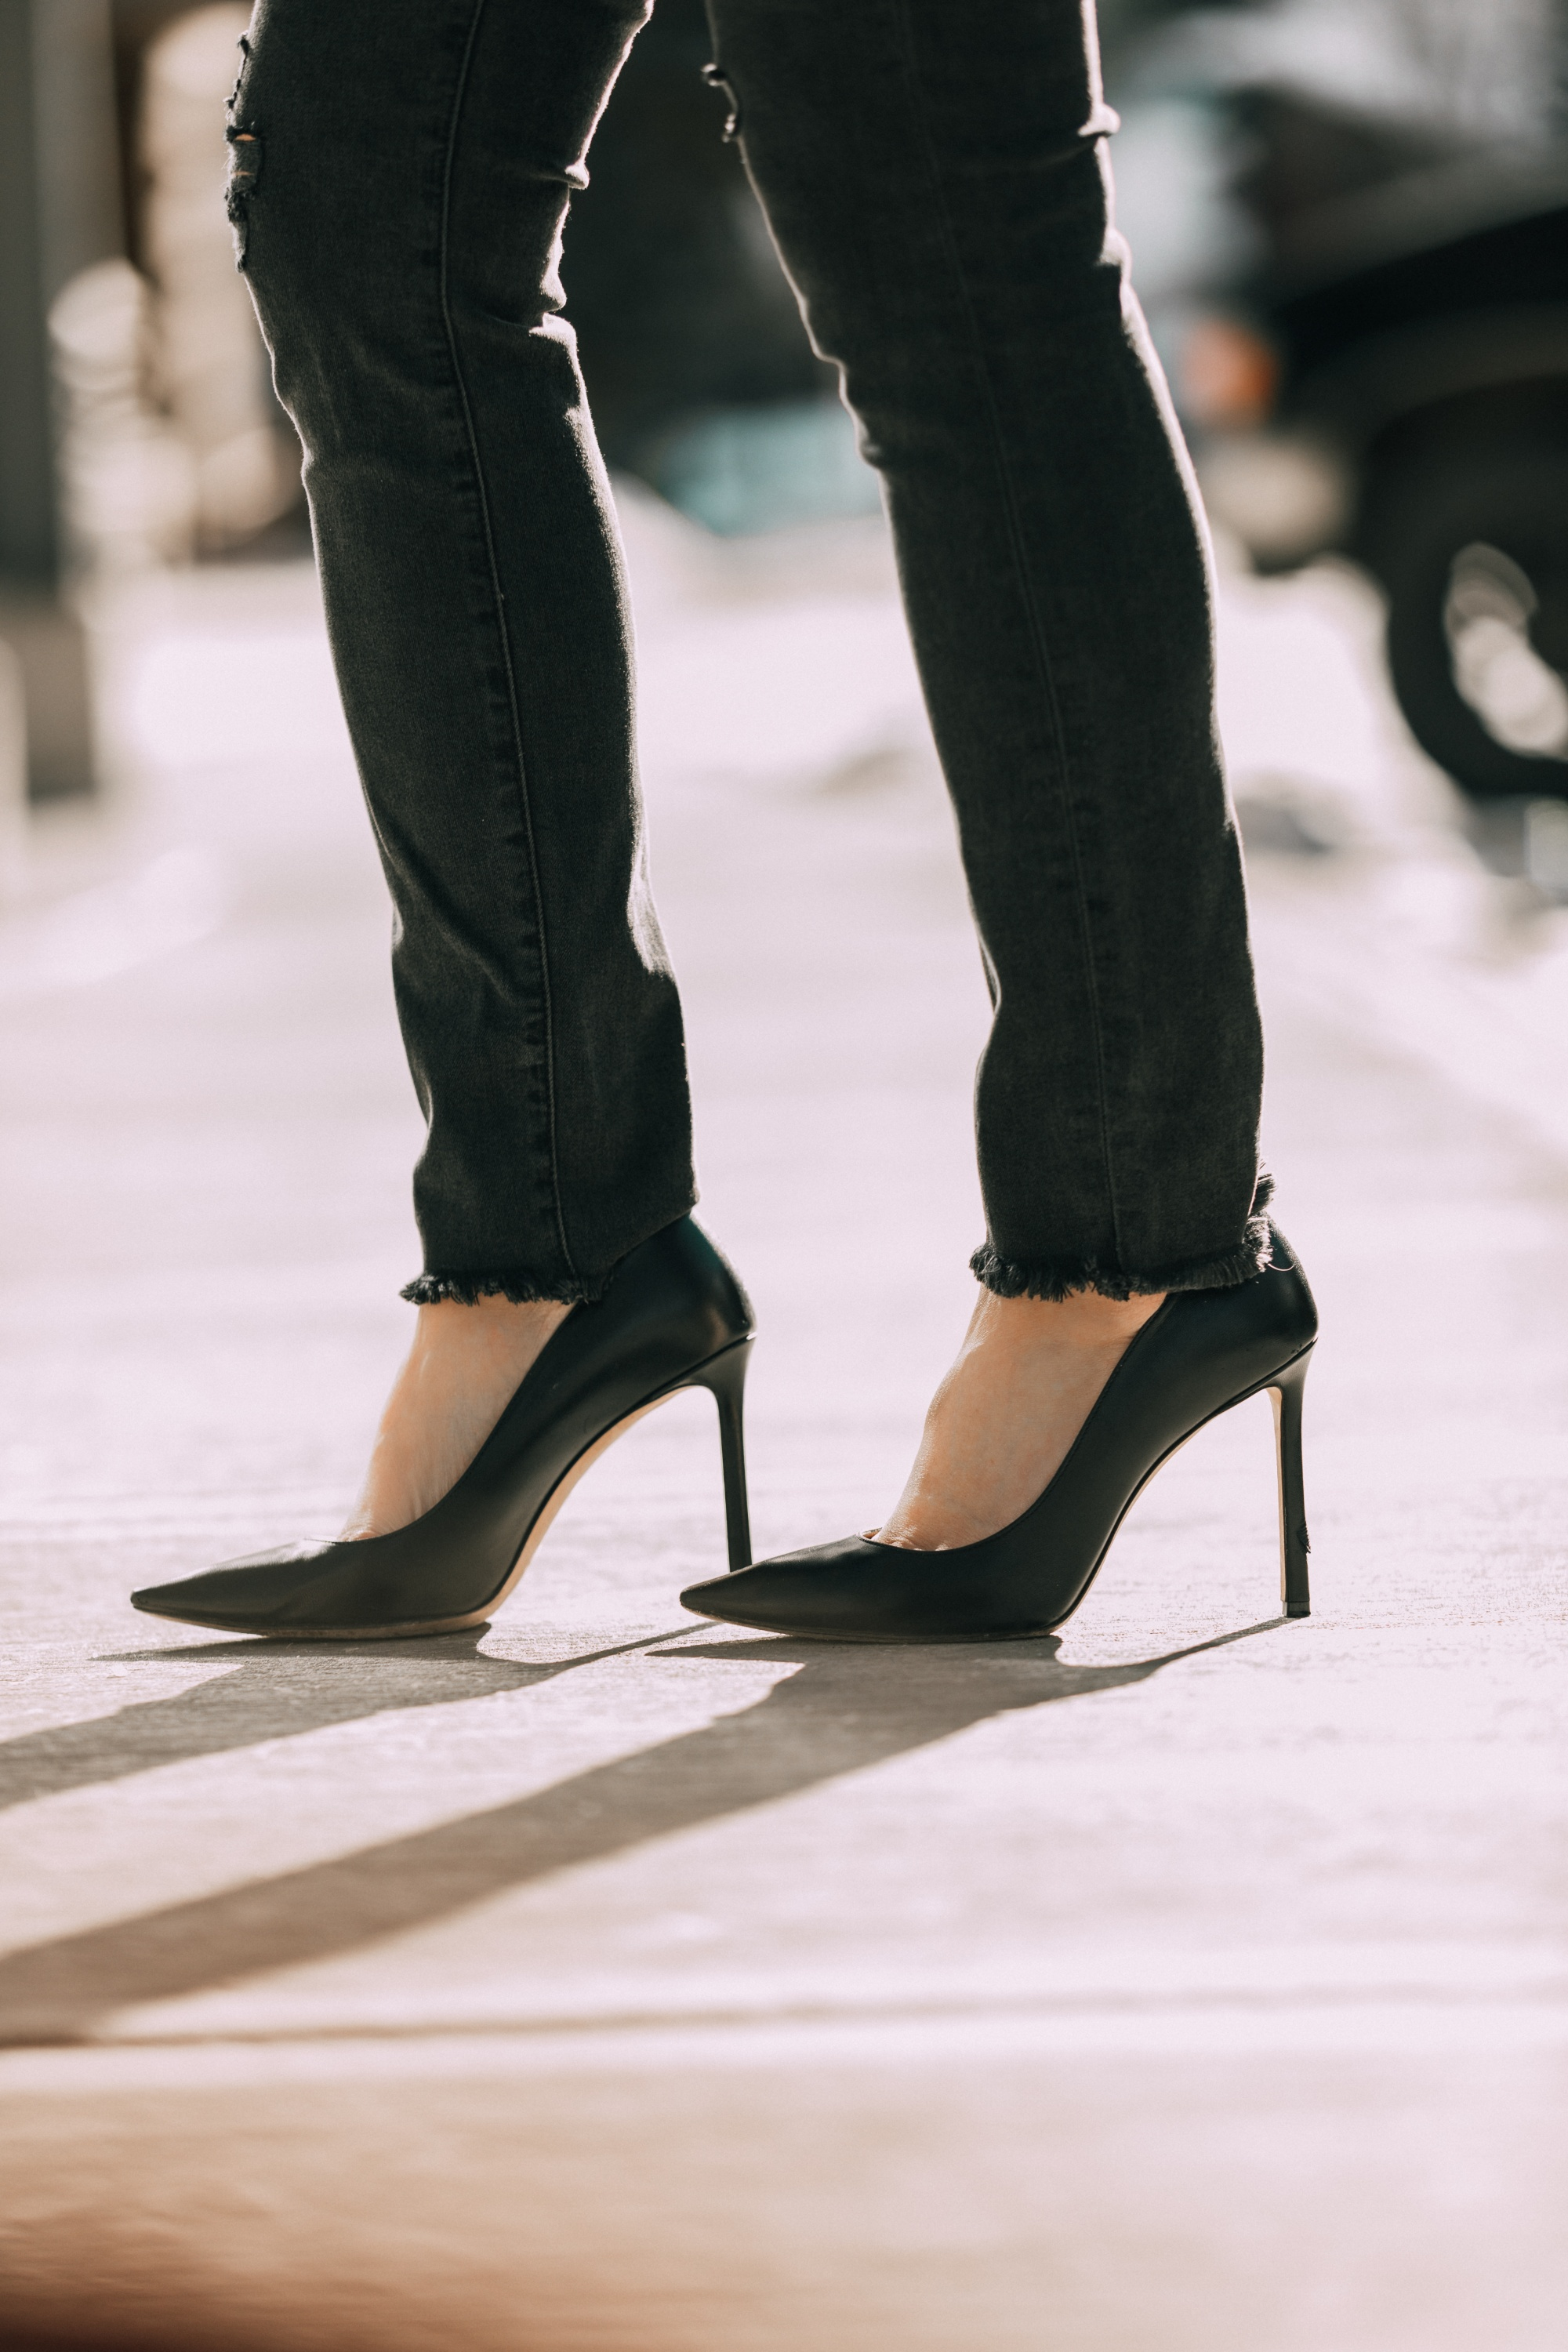 Women's fashion blogger, Erin Busbee, shares 13 style hacks for women over 40 who love fashion.